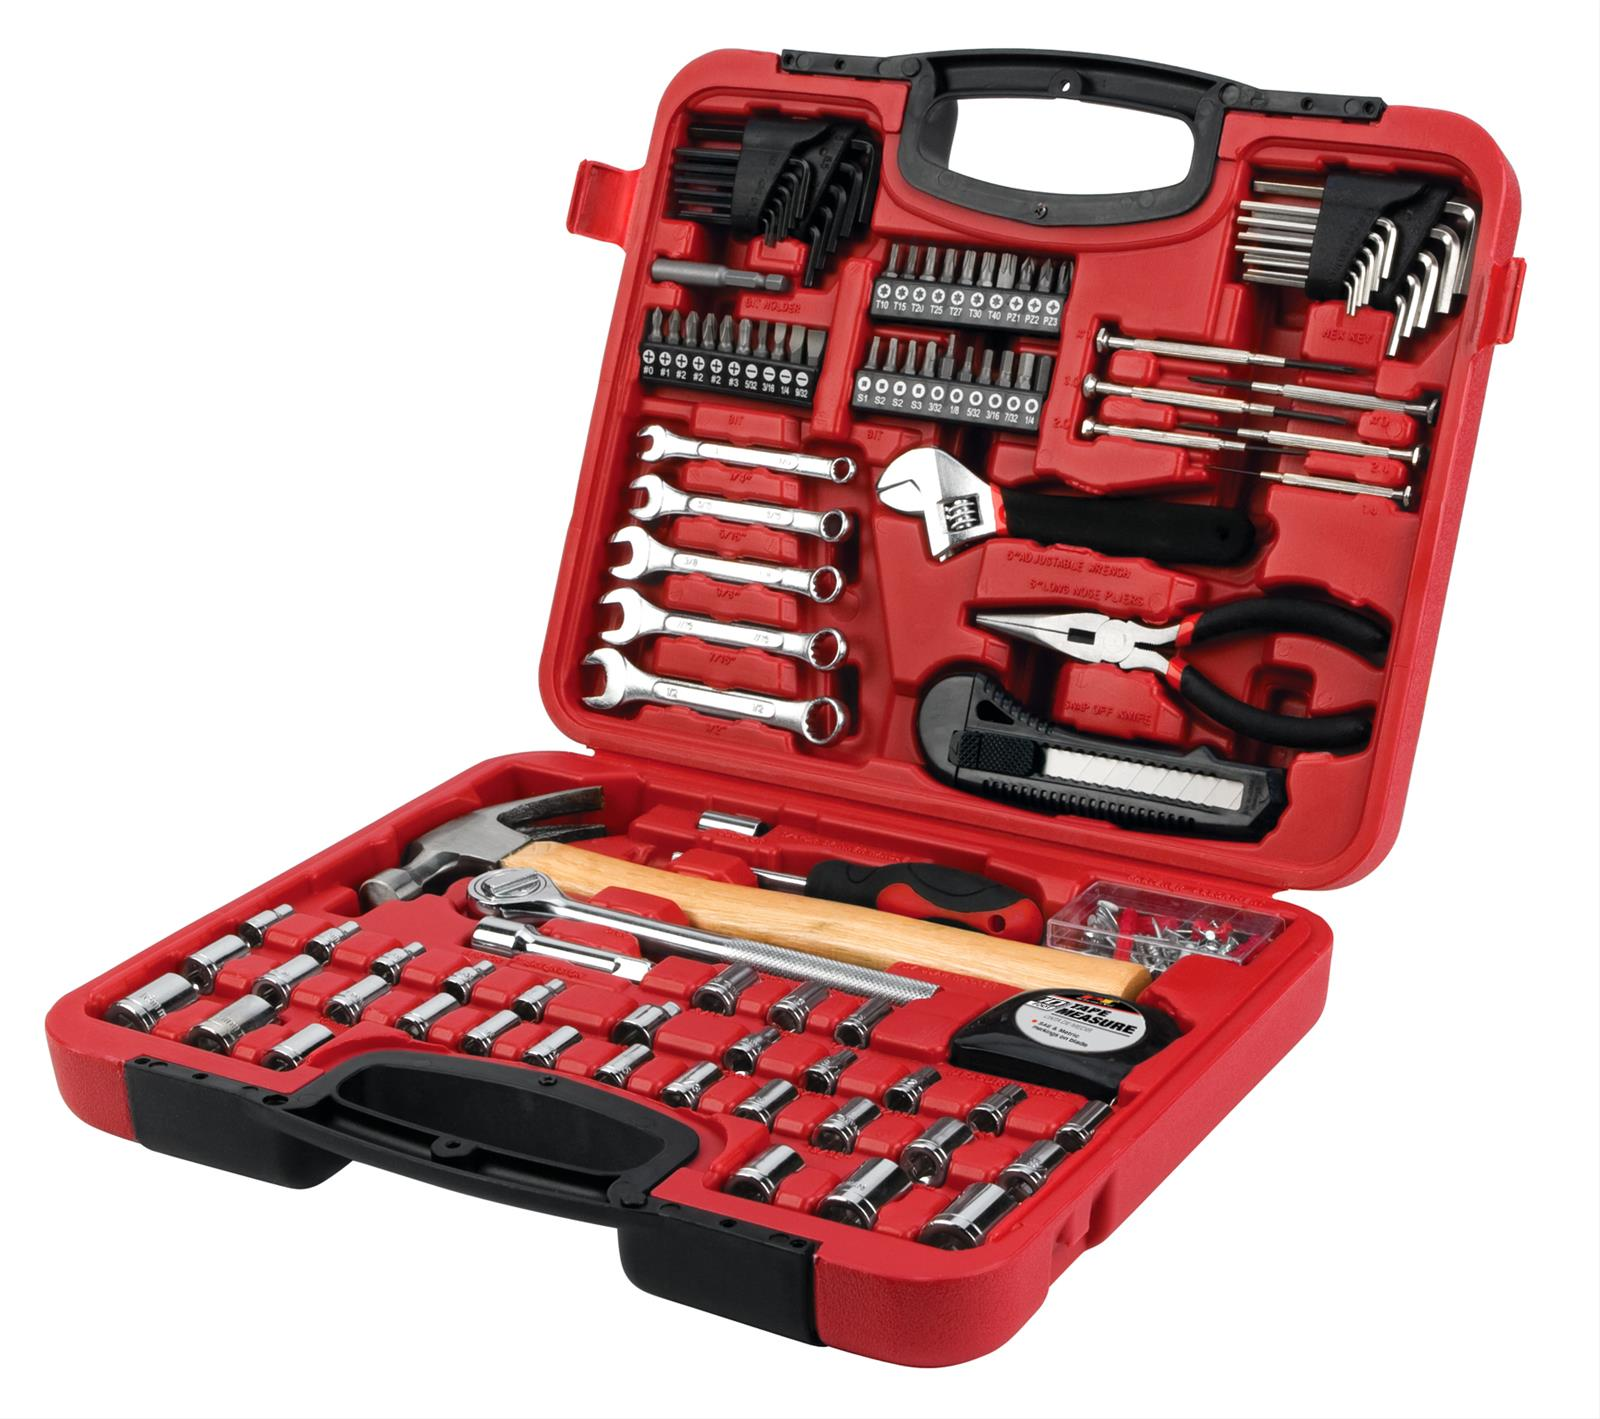 performance tool home and auto tool set storage case 107 piece kit ebay. Black Bedroom Furniture Sets. Home Design Ideas